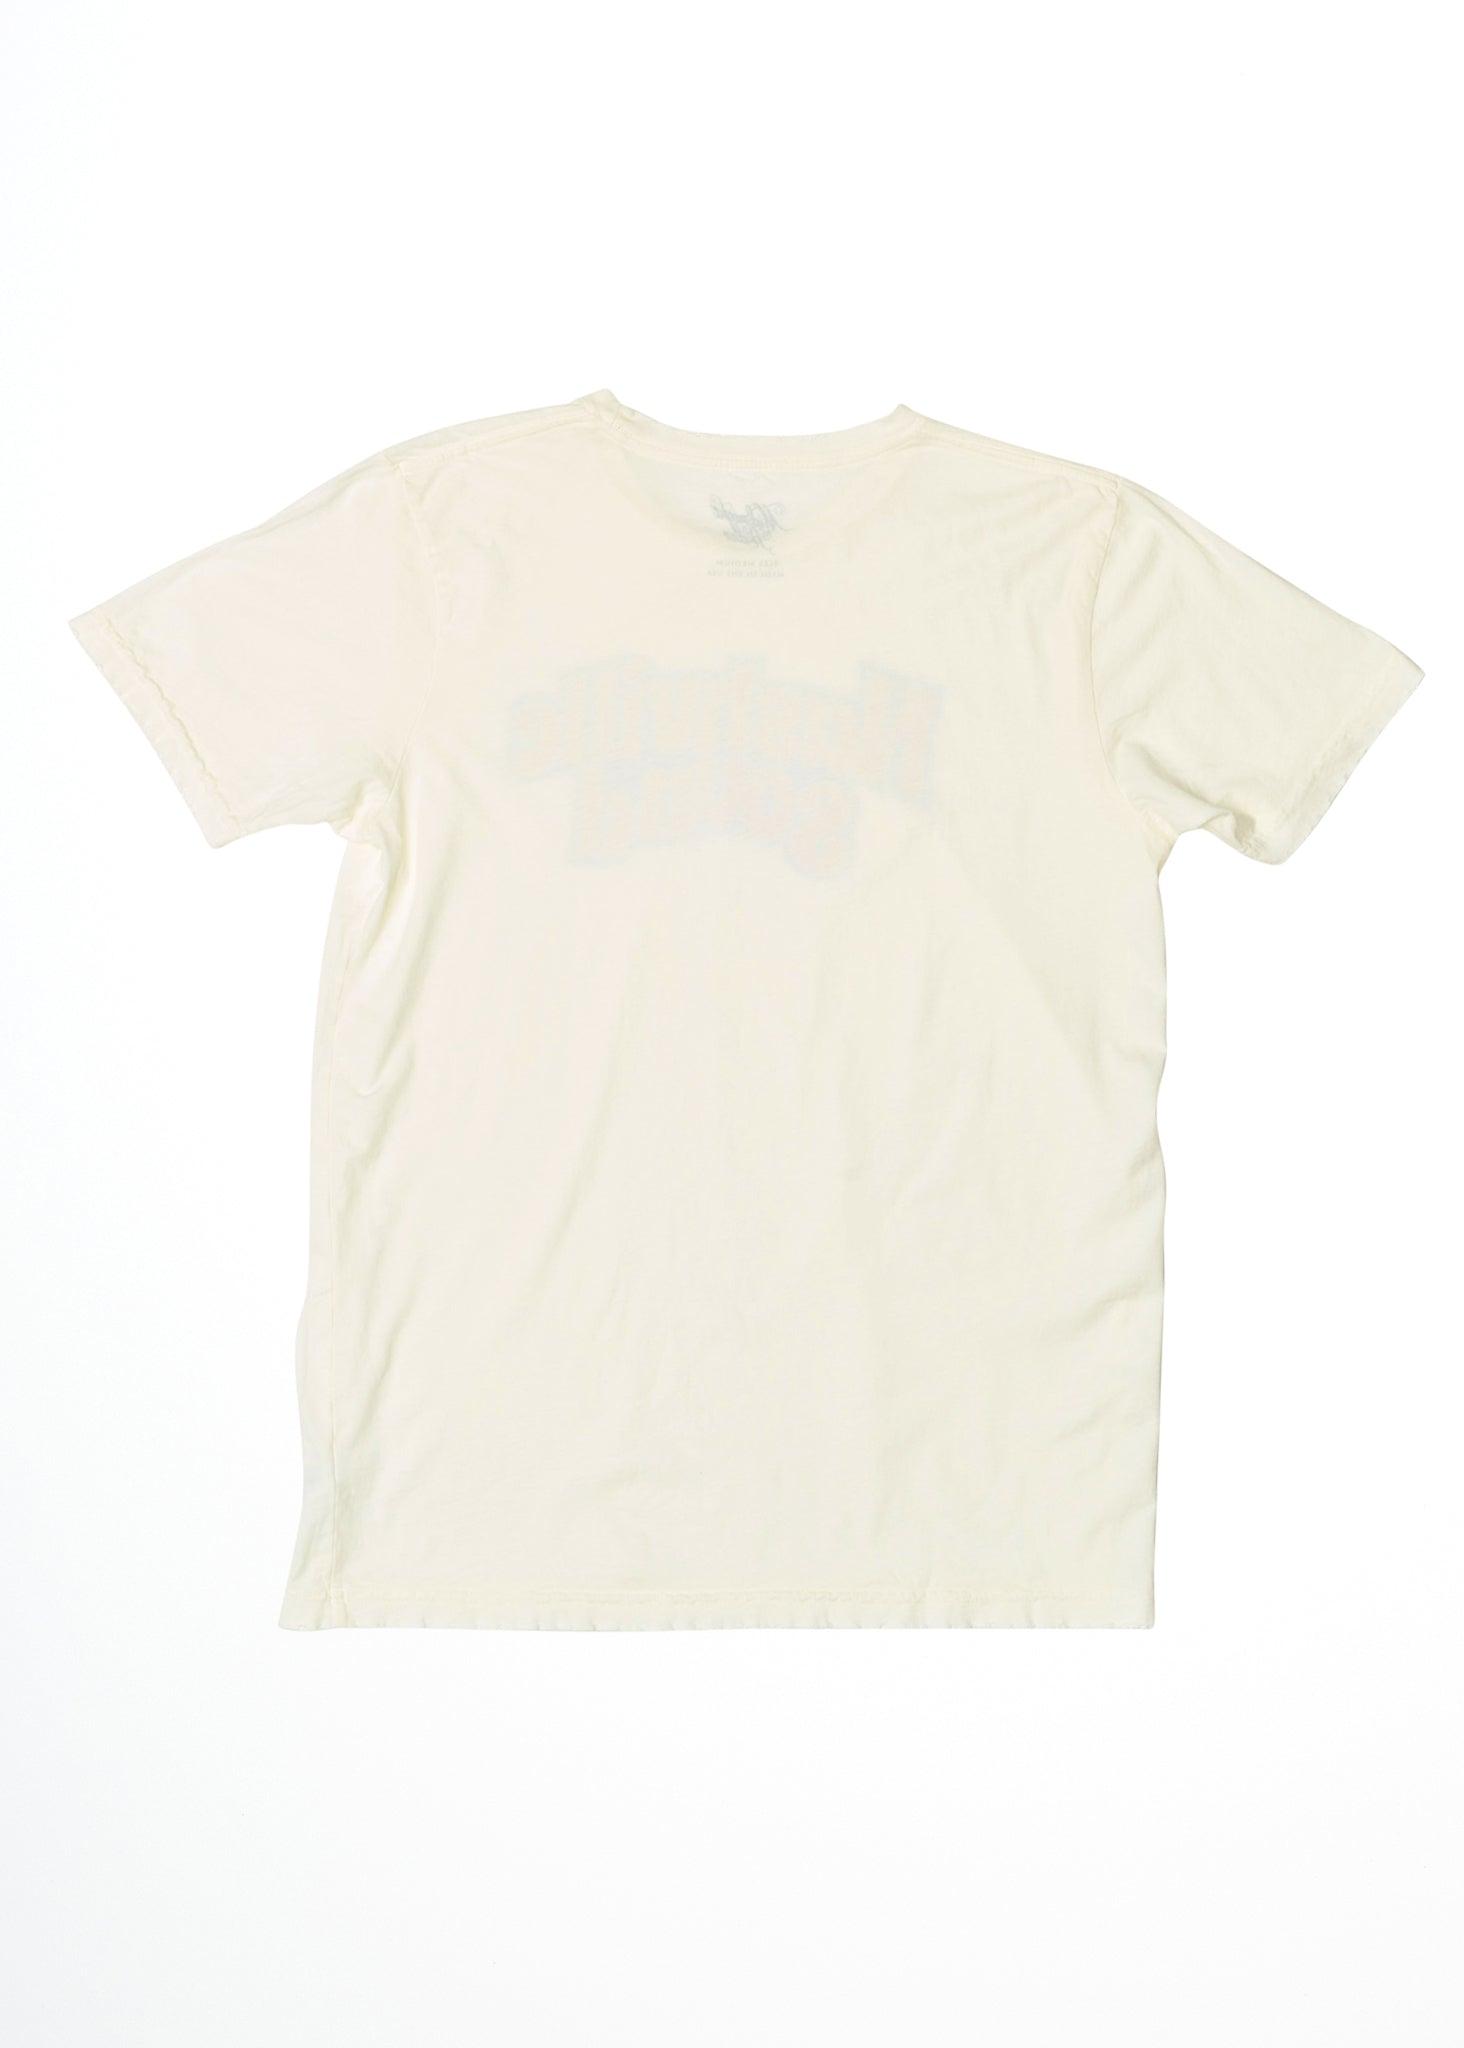 Nashville Sound Men's Tee Shirt - Coconut Cream